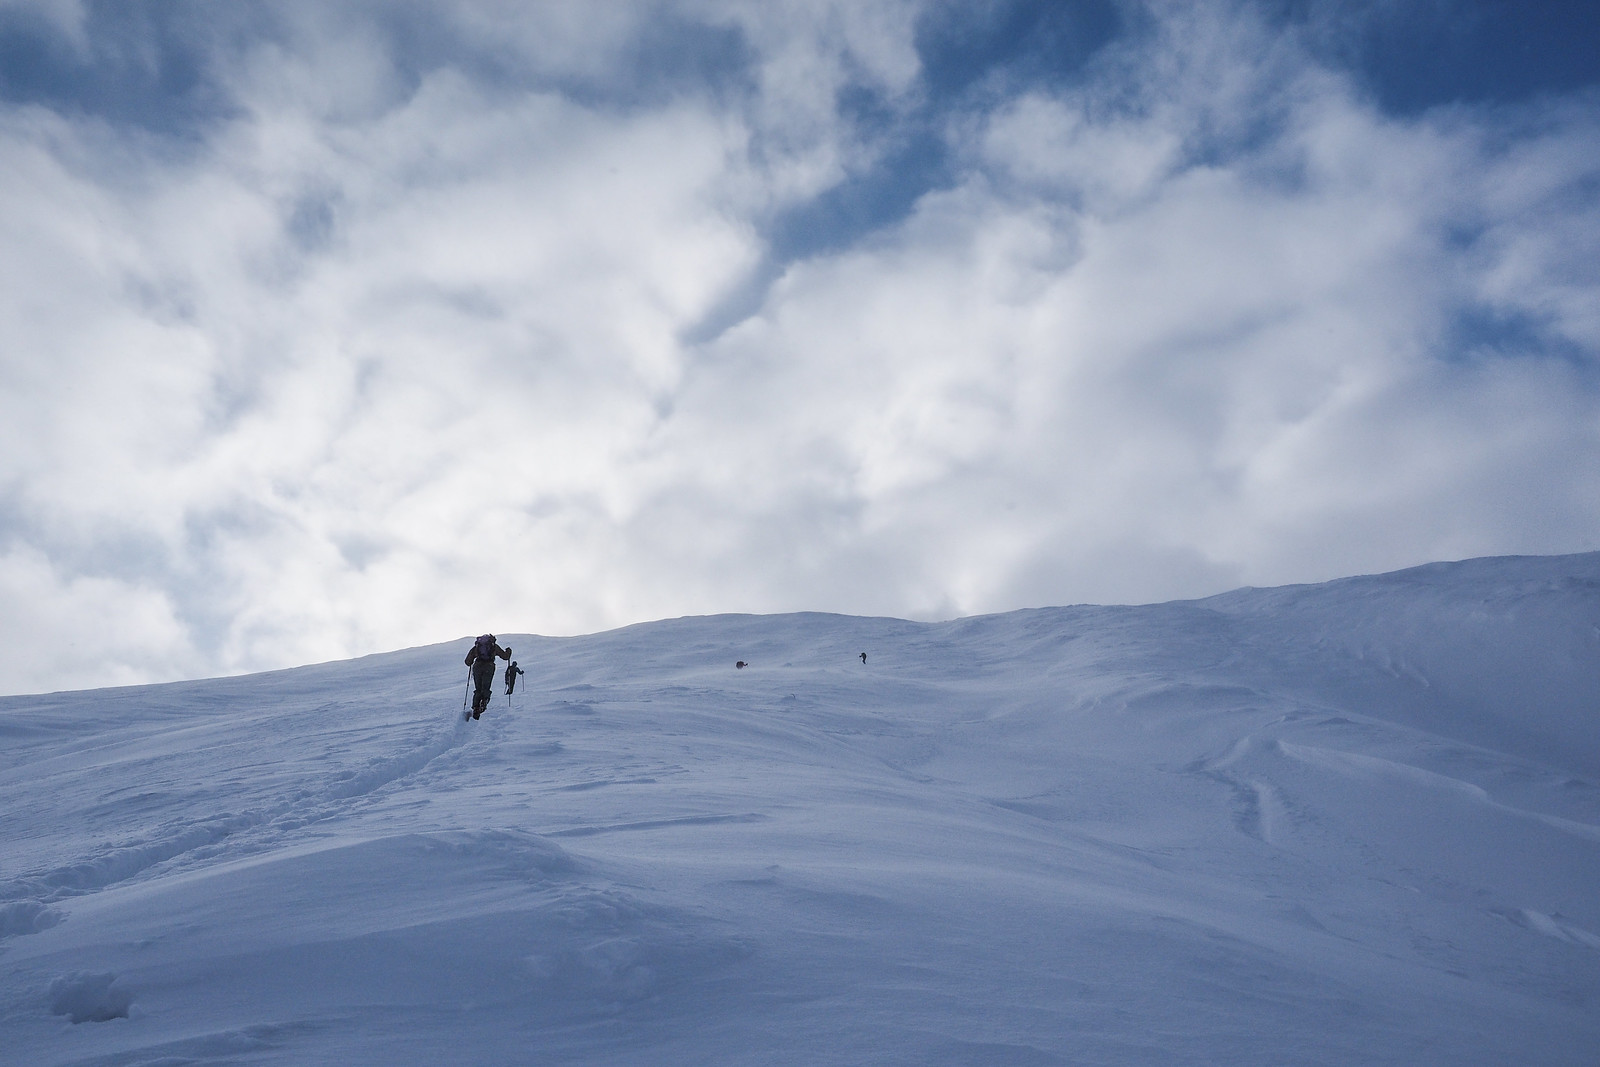 Skiing Sandan-yama in the Tokachi mountain range (Hokkaido, Japan)